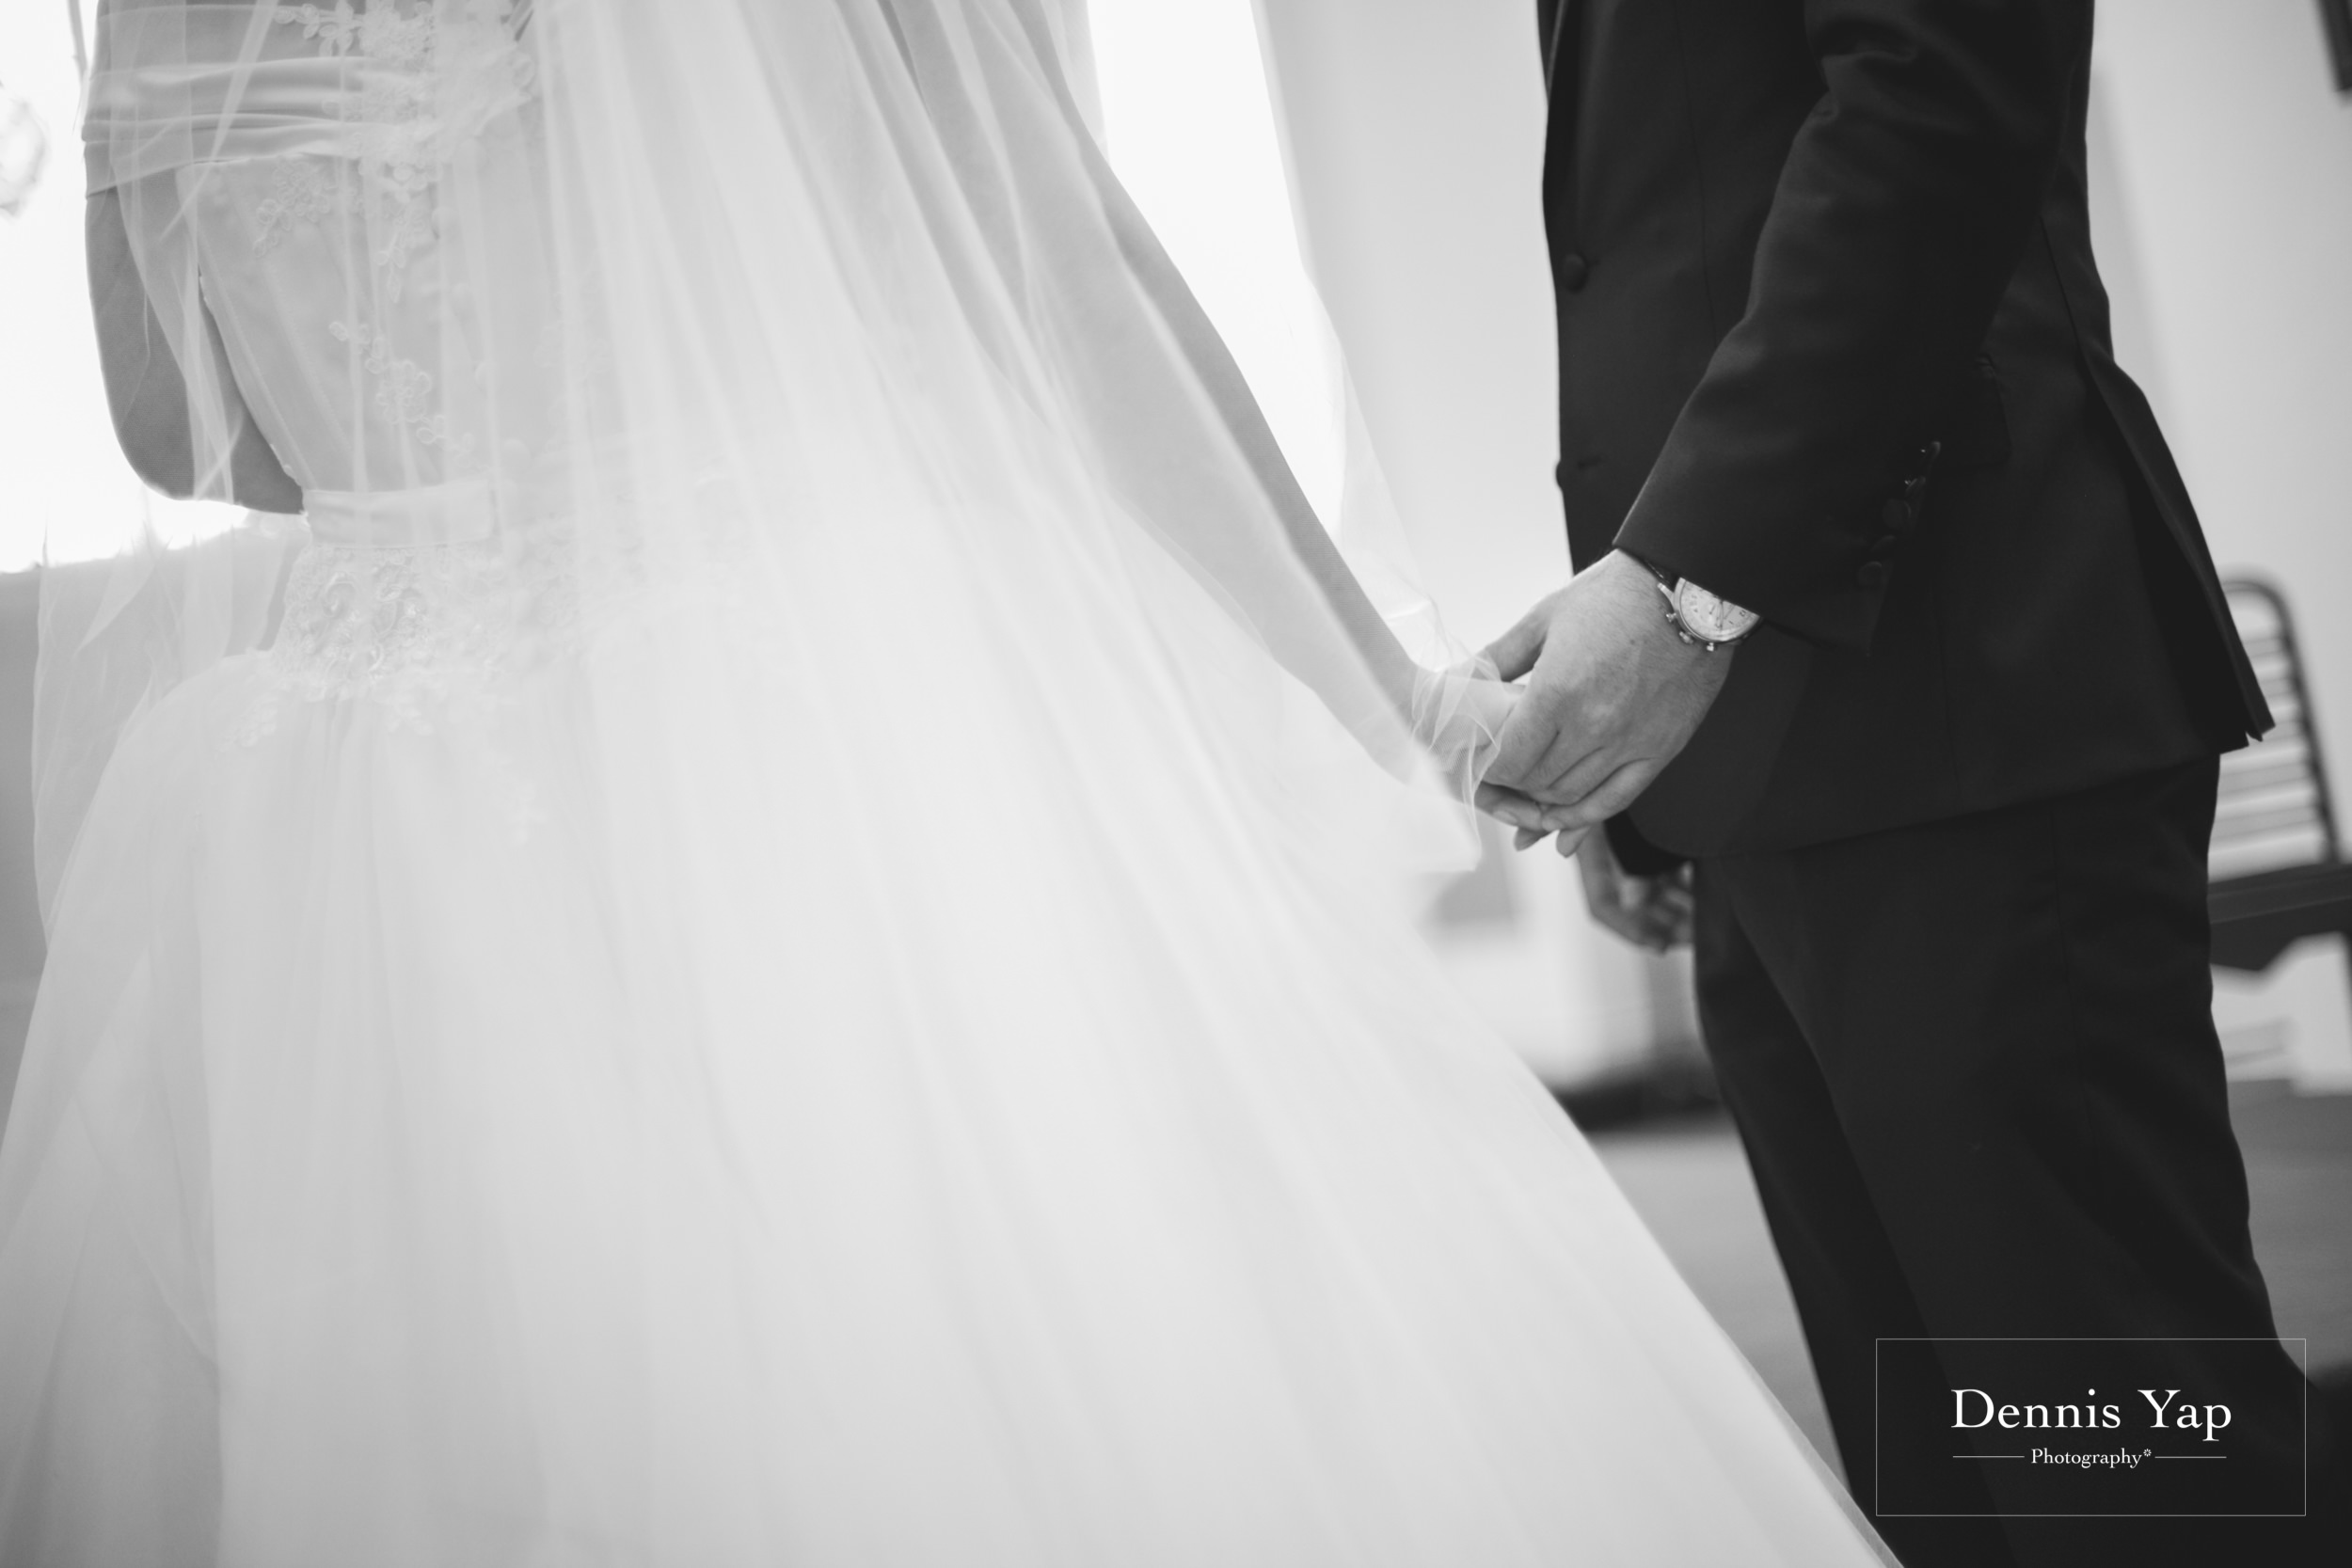 tony daphne wedding day melbourne RACV dennis yap photography malaysia top photographer beloved real moments-29.jpg